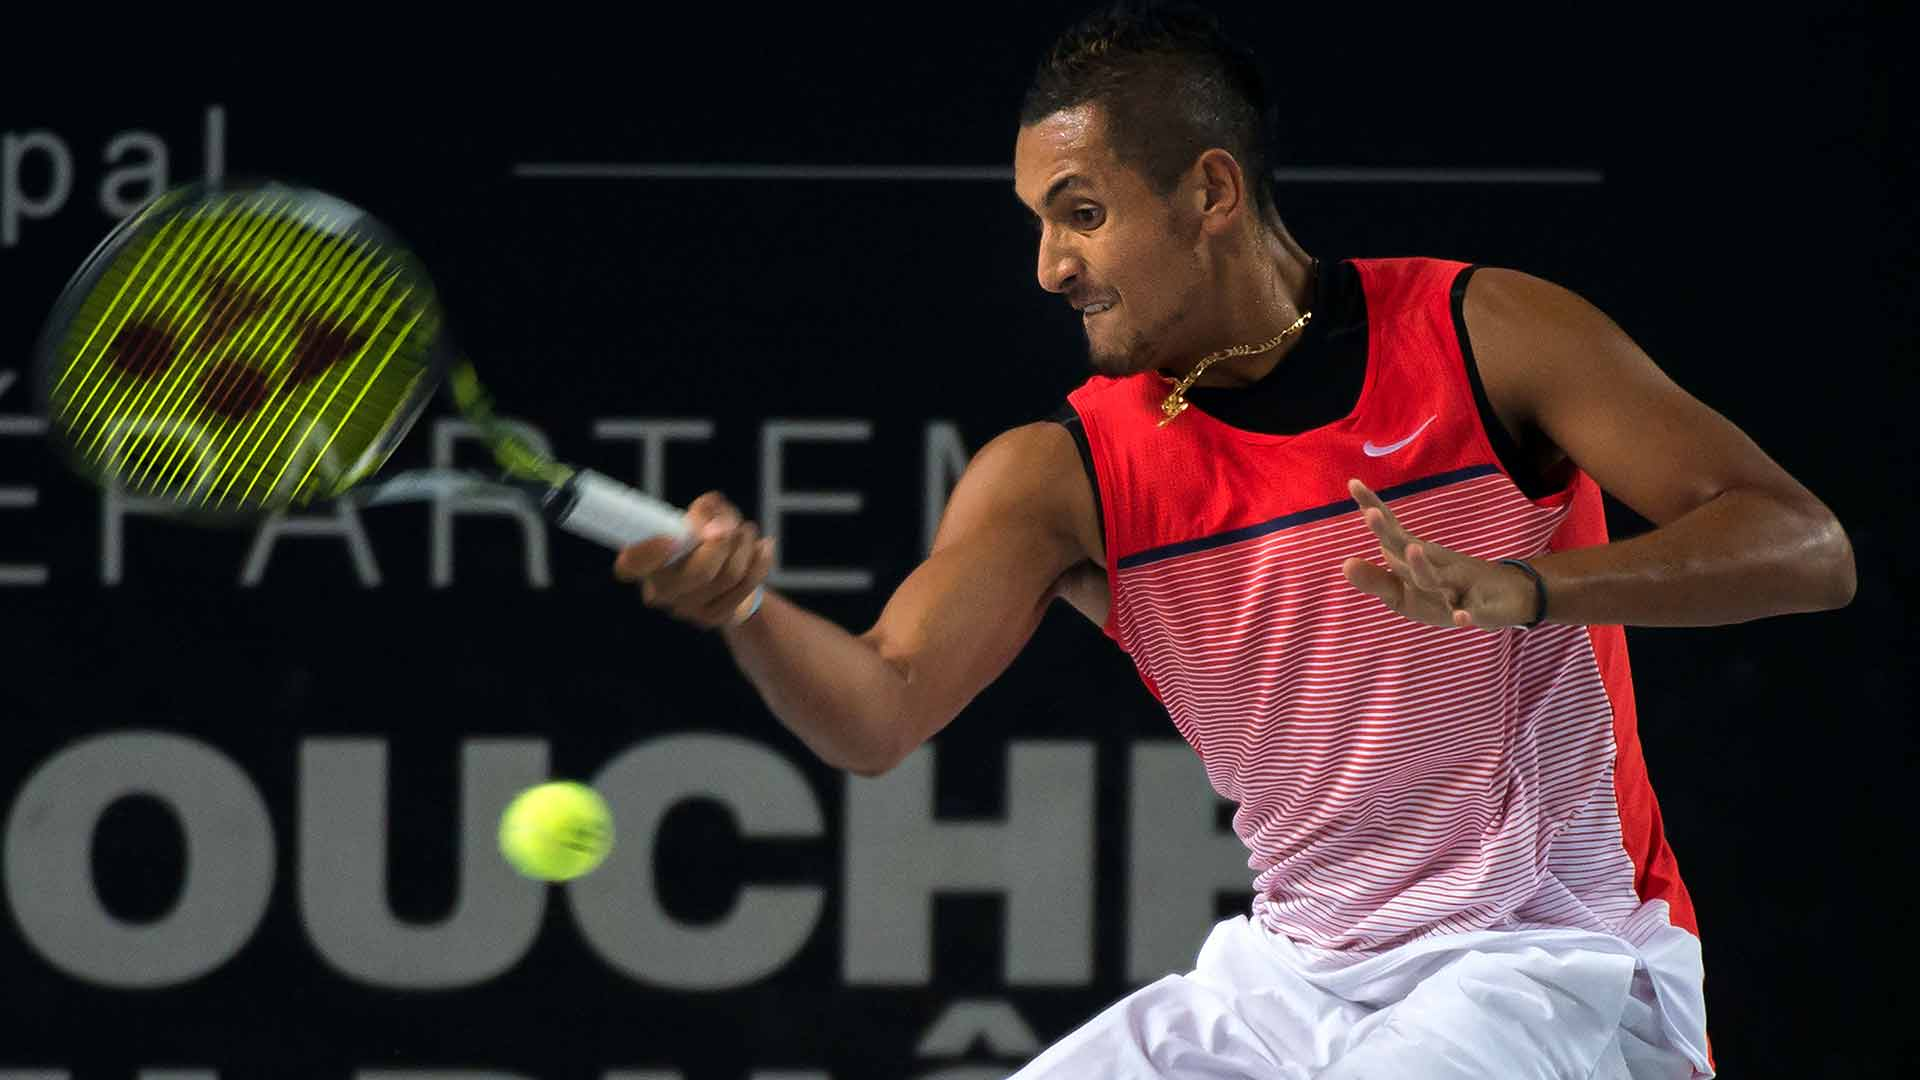 Nick Kyrgios downs Tomas Berdych to reach the Marseille final.